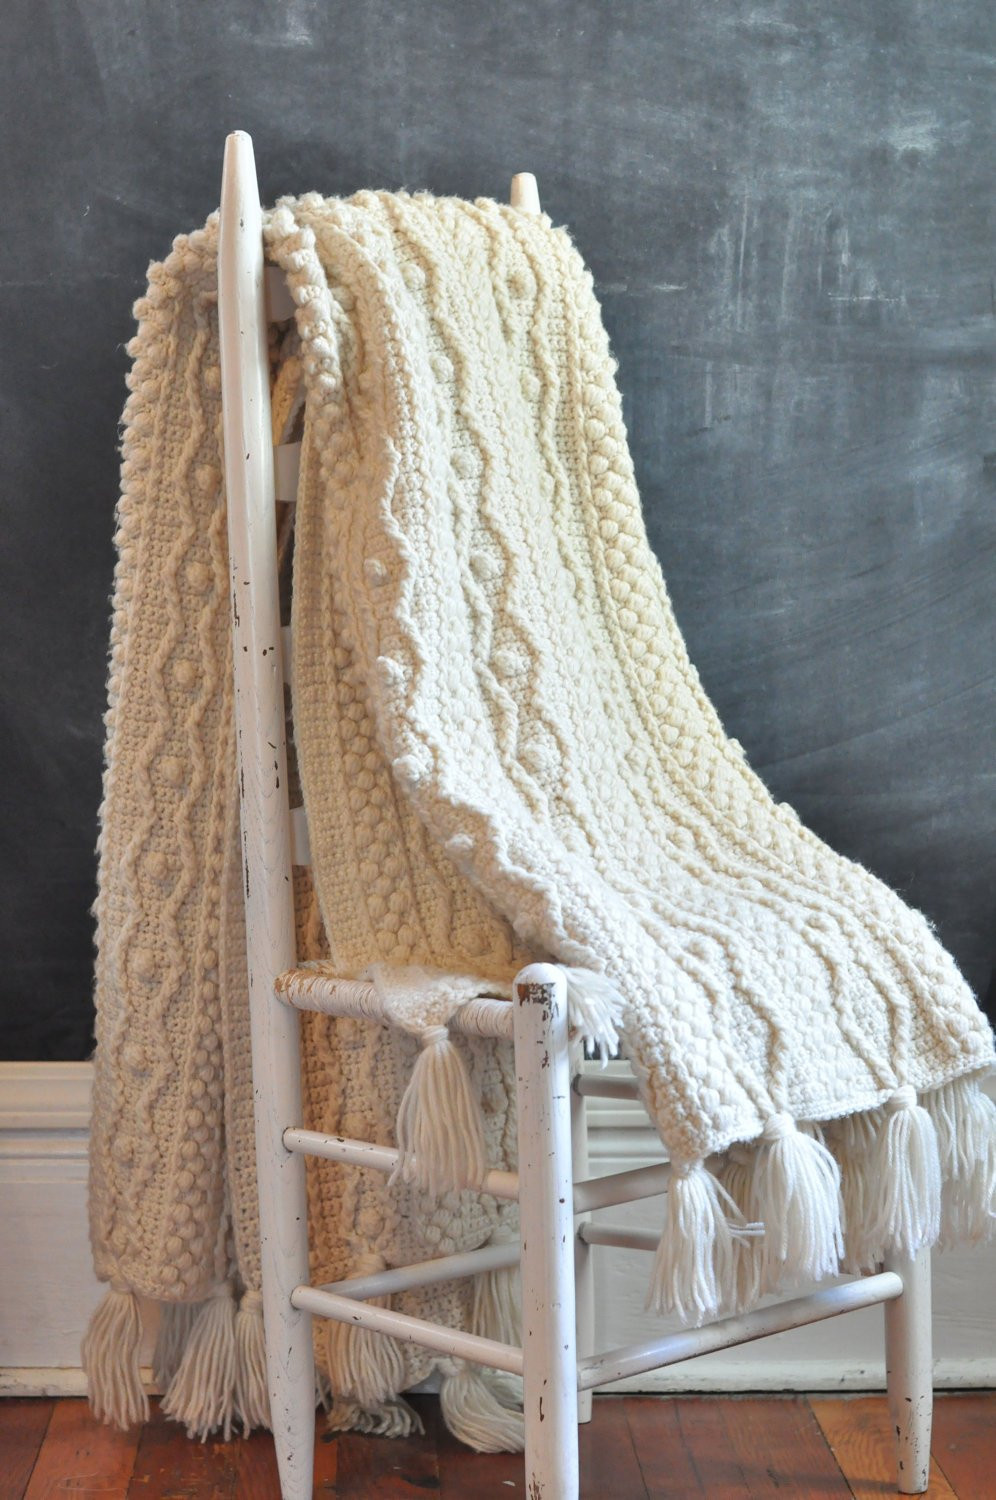 Crochet Cables Beautiful Vintage Aran Heavy F White Afghan Blanket Rug Crochet Cable Of Amazing 48 Pics Crochet Cables